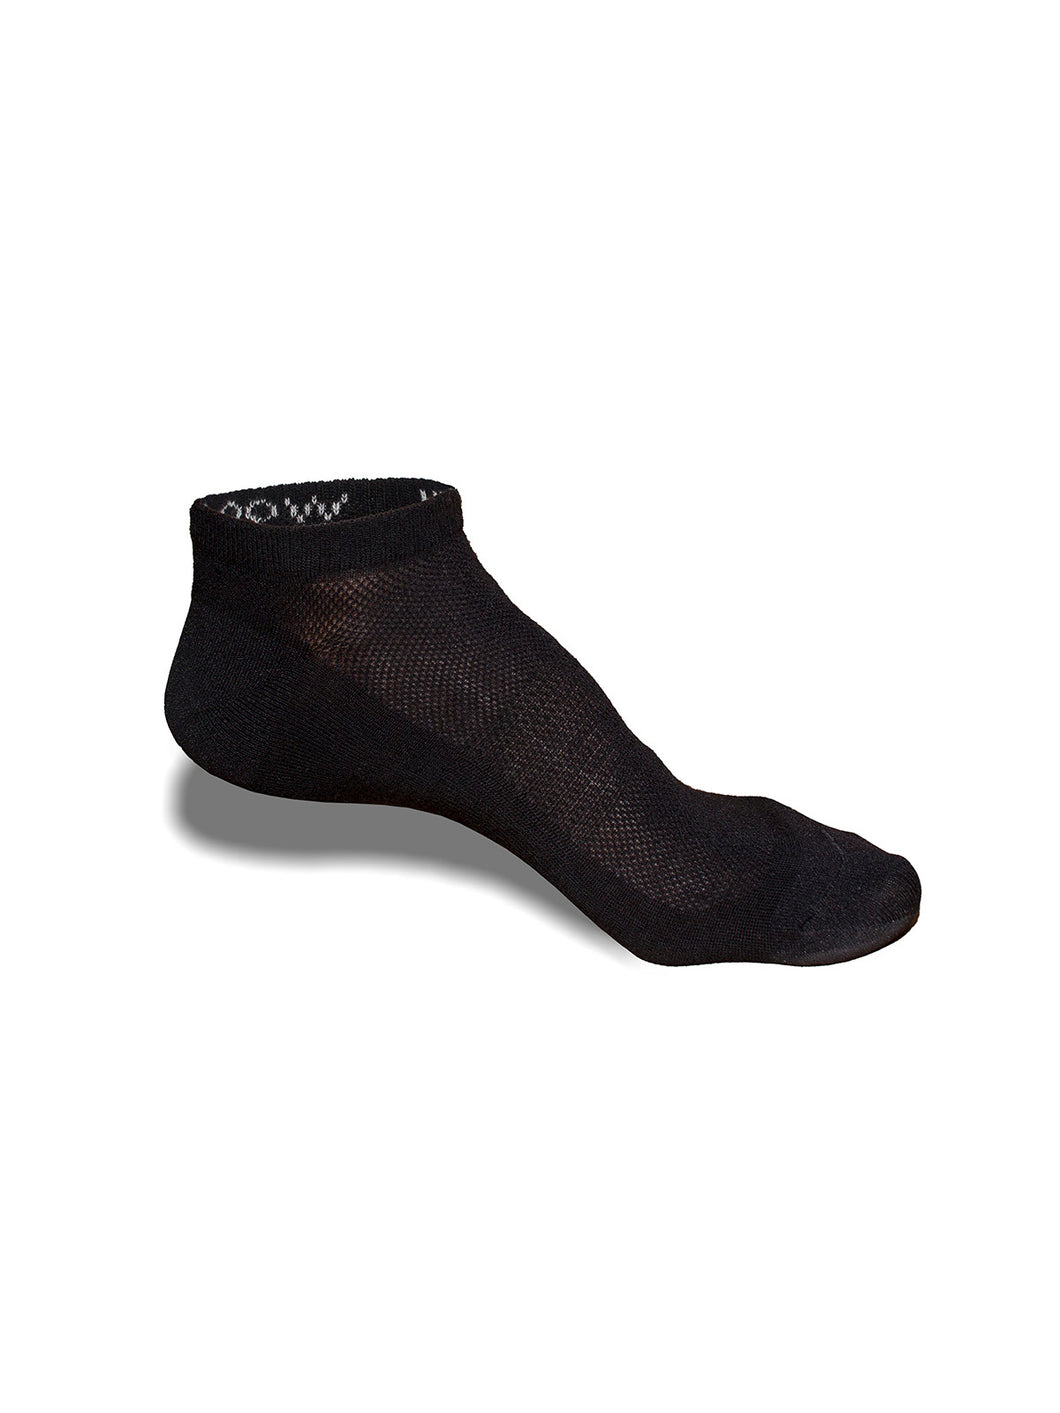 mens merino no show socks, footie